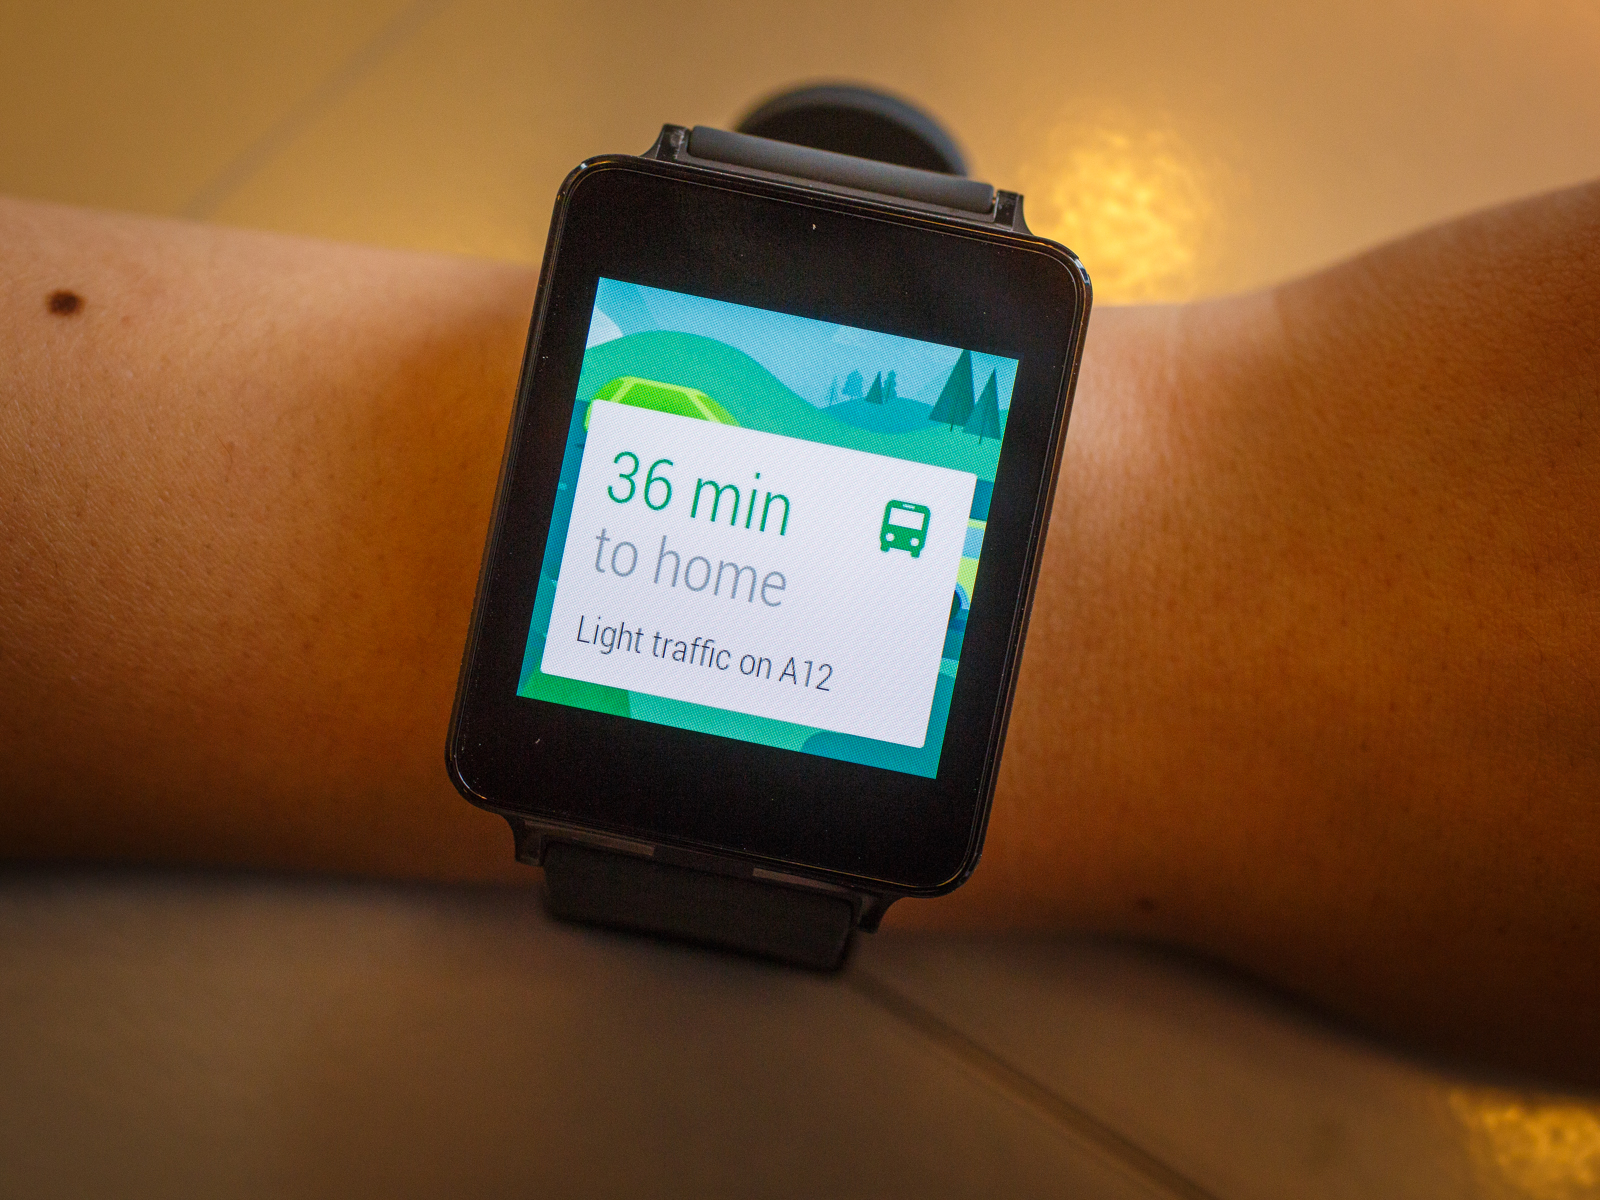 lg-g-watch-android-wear-1.jpg